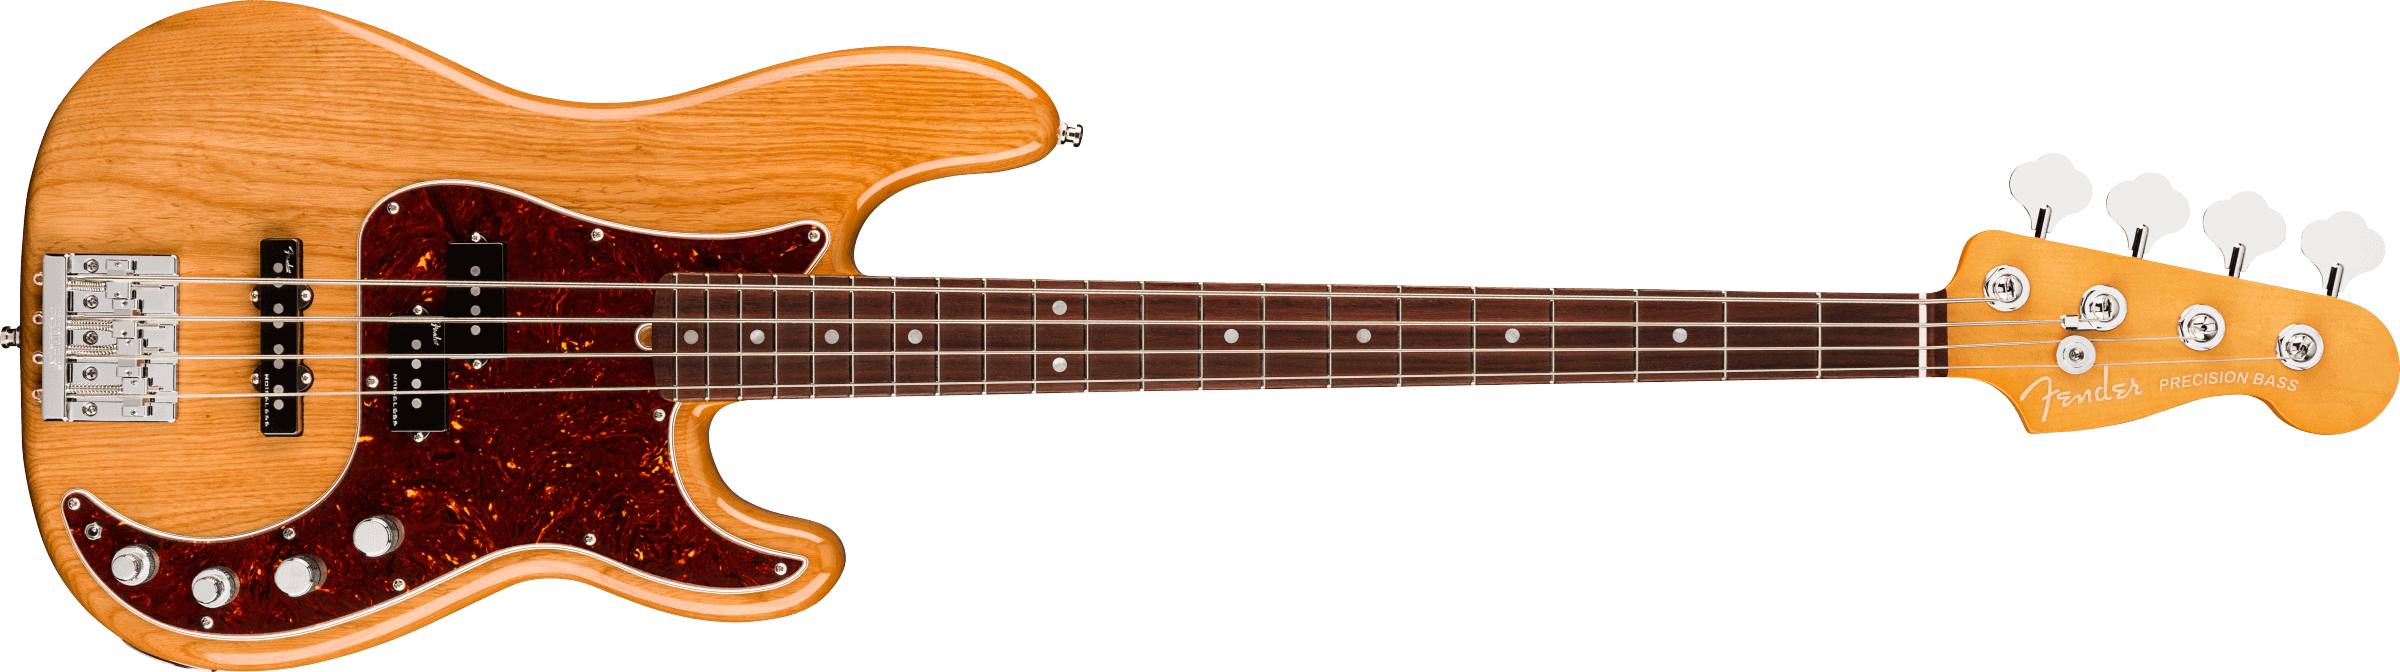 Fender American Ultra Precision Bass®, Rosewood Fingerboard, Aged Natural